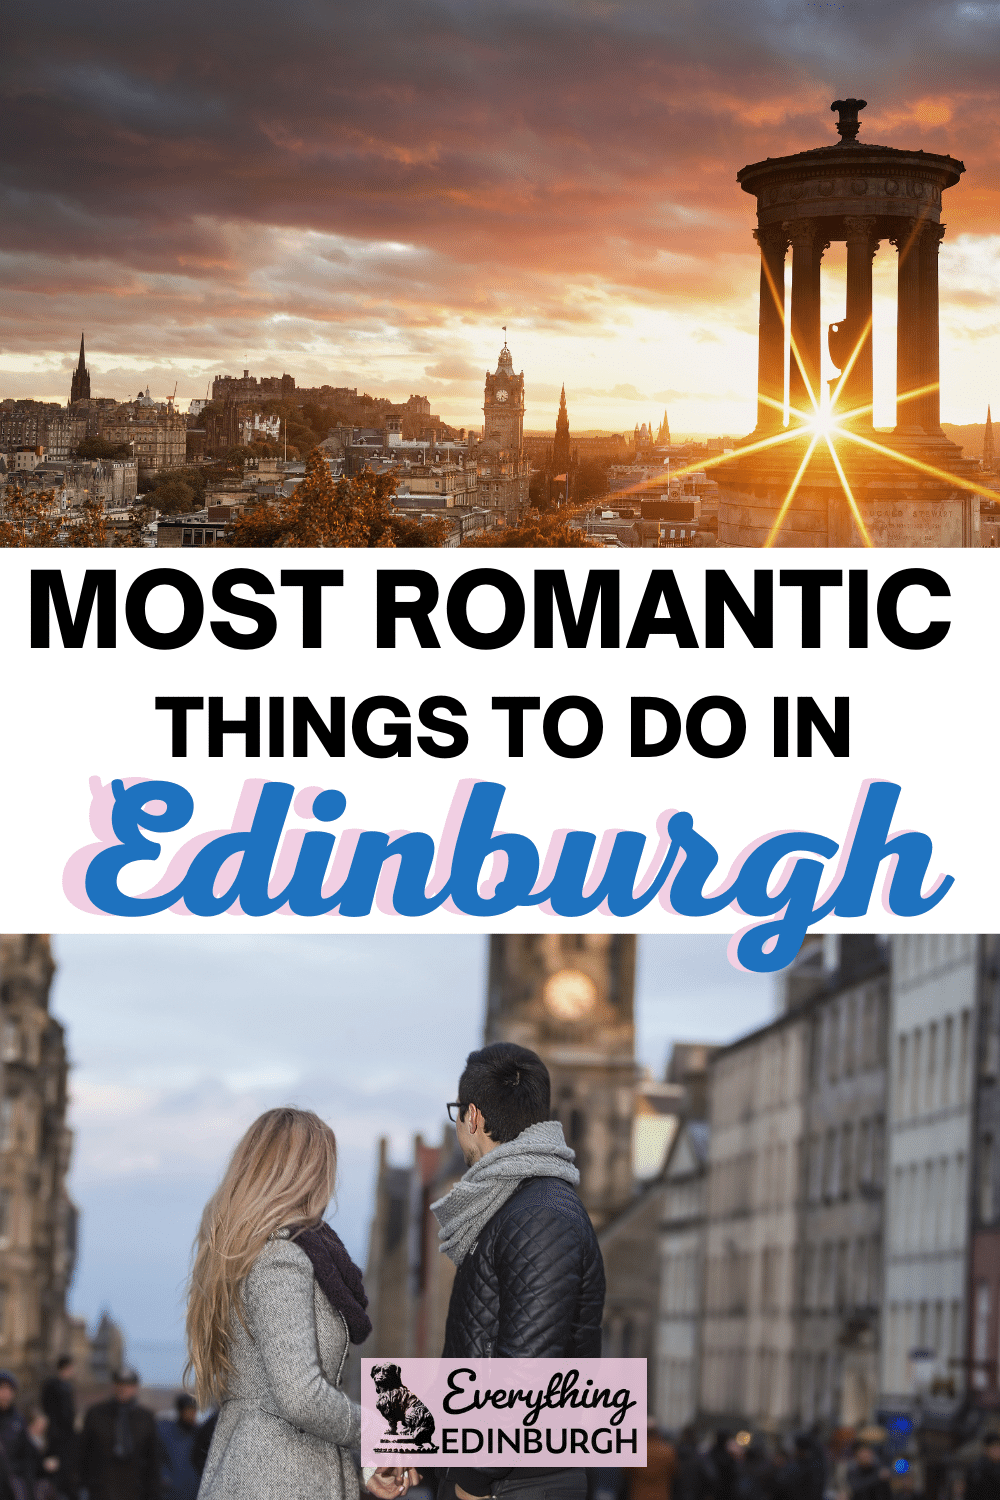 Looking for the most romantic things to do in Edinburgh? This guide details fun date night ideas, popular couple activities and unique options for special couples. Budget-friendly options for all seasons so if you are planning a trip to Edinburgh, click to read our advice for lovers.